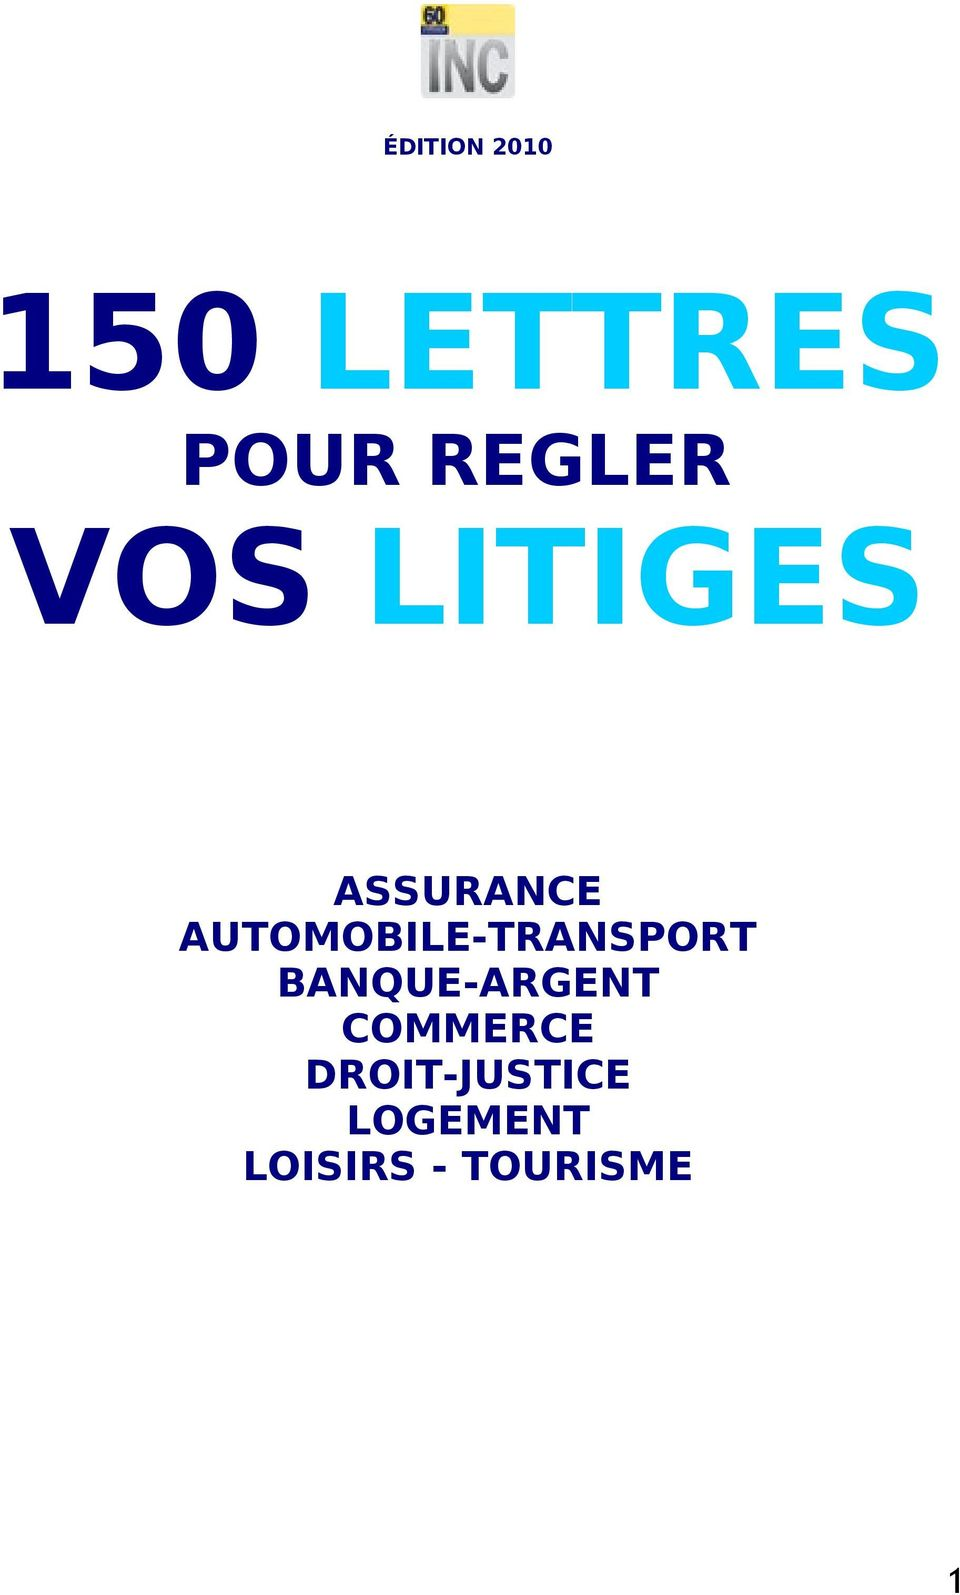 AUTOMOBILE-TRANSPORT BANQUE-ARGENT